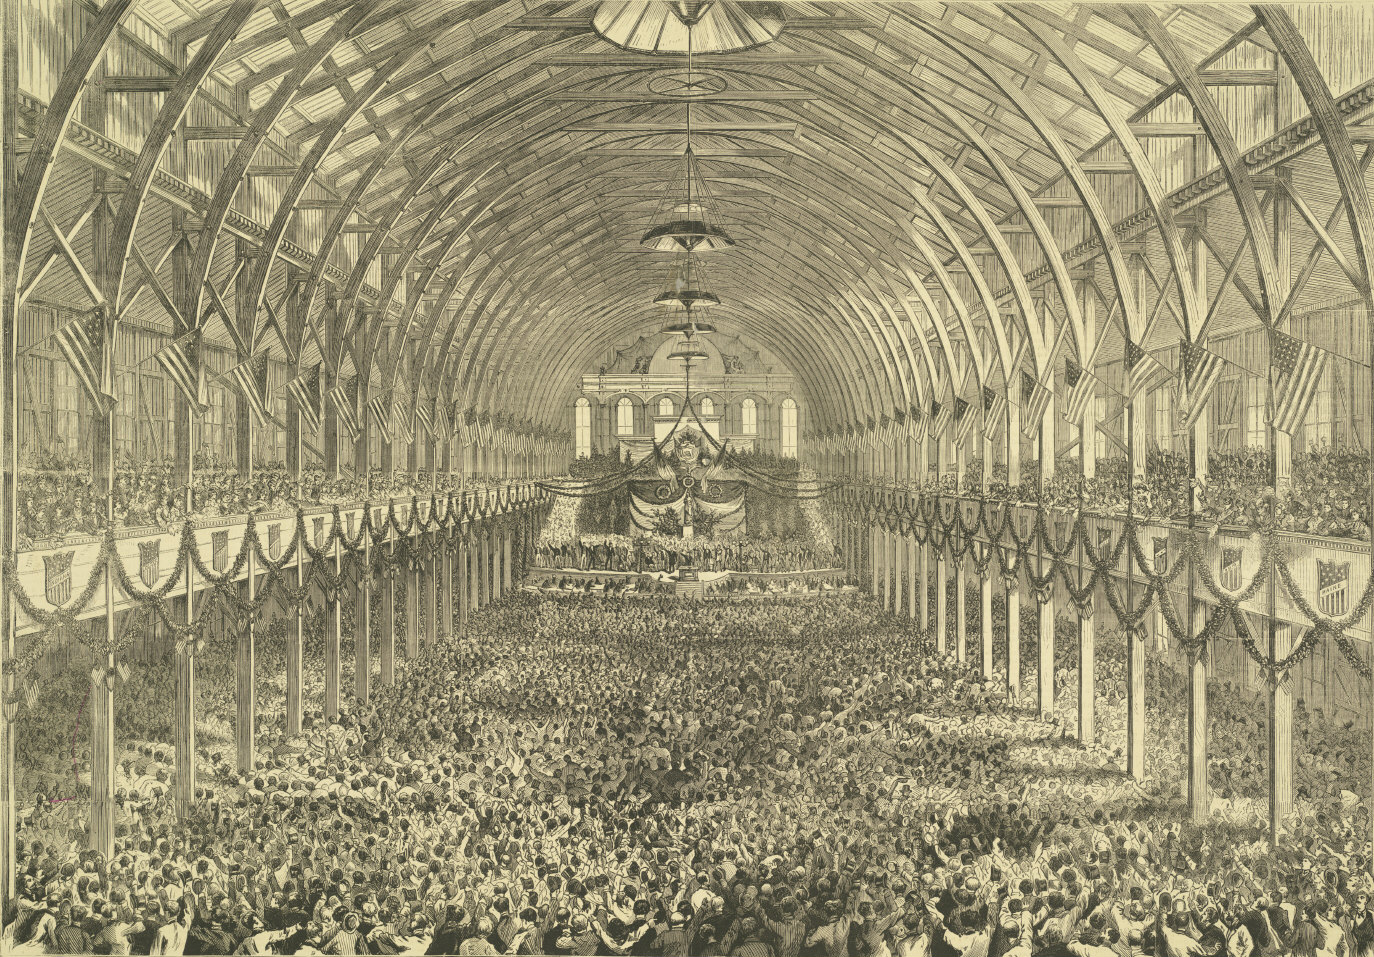 1872 Liberal Republican National Convention. This is the interior of Exposition Hall, decorated with state shields and evergreen garland on galleries